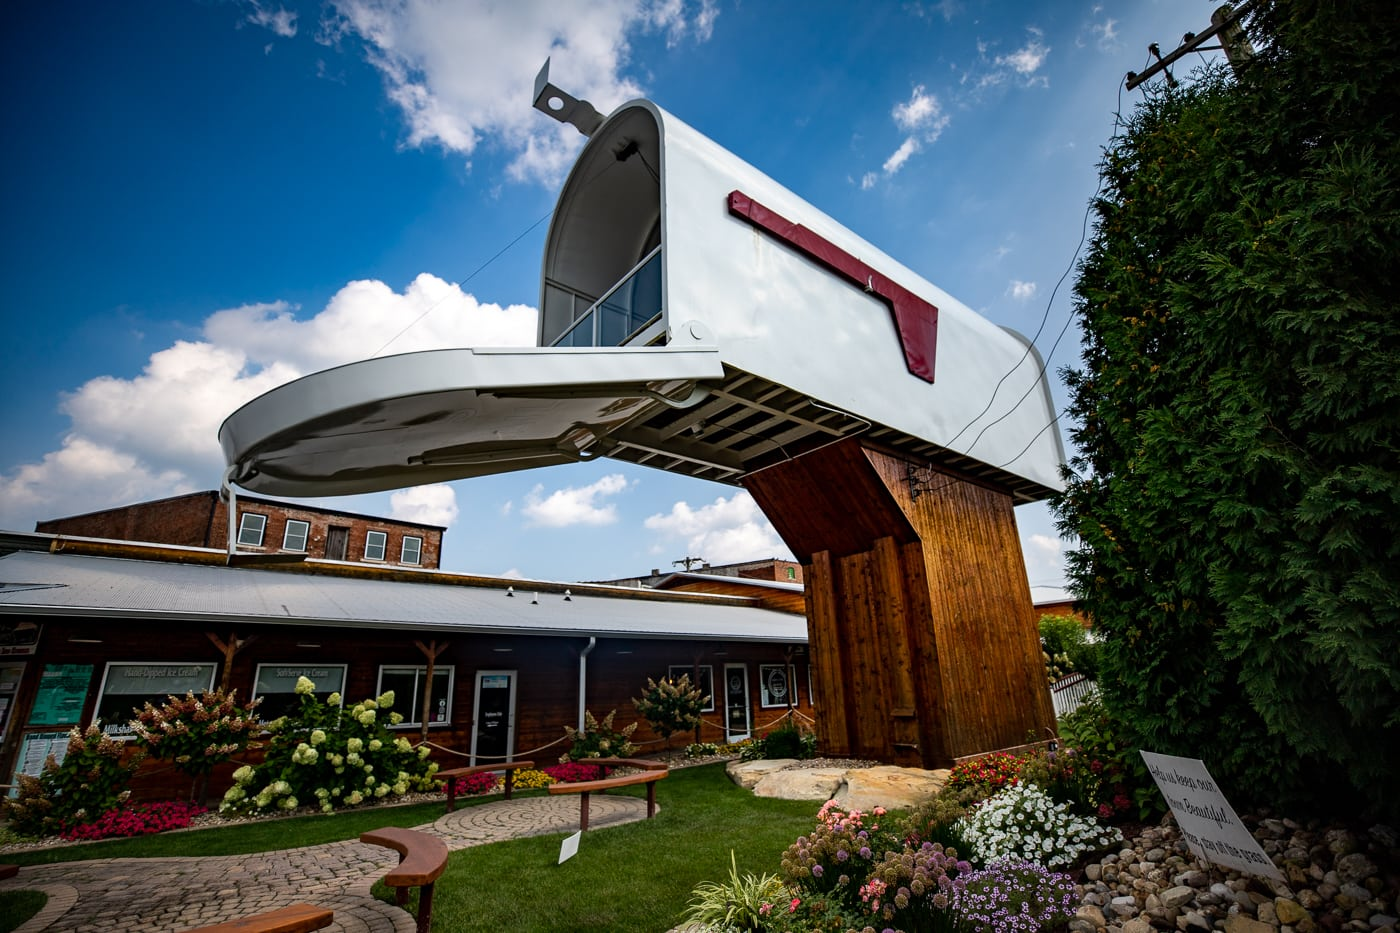 World's Largest Mailbox  in Casey, Illinois roadside attraction